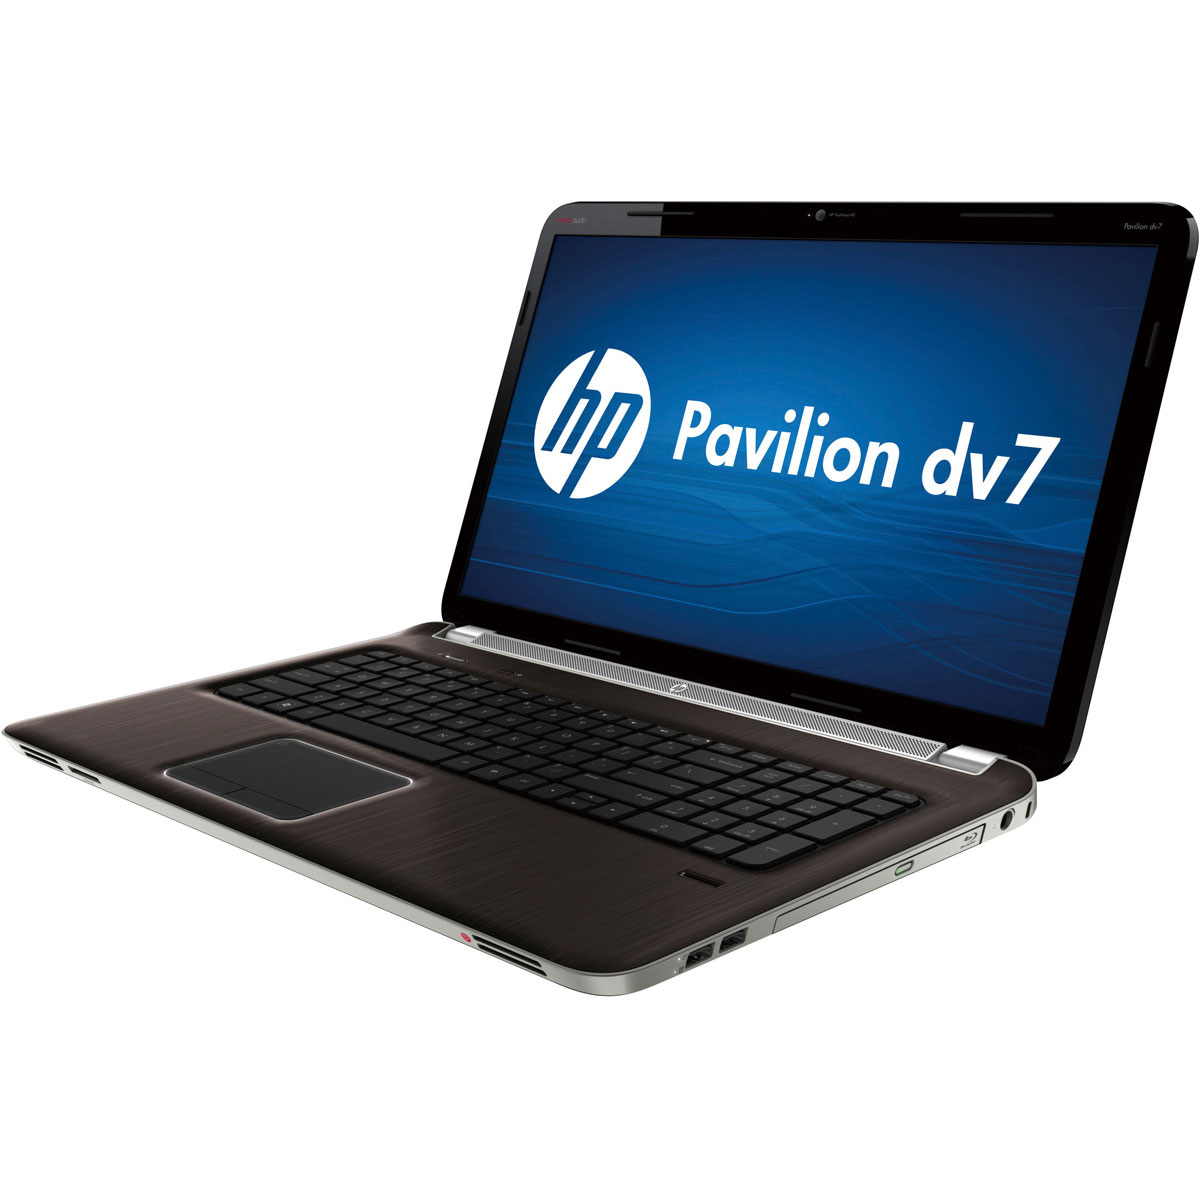 hp pavilion dv7 6c00tx laptop price. Black Bedroom Furniture Sets. Home Design Ideas